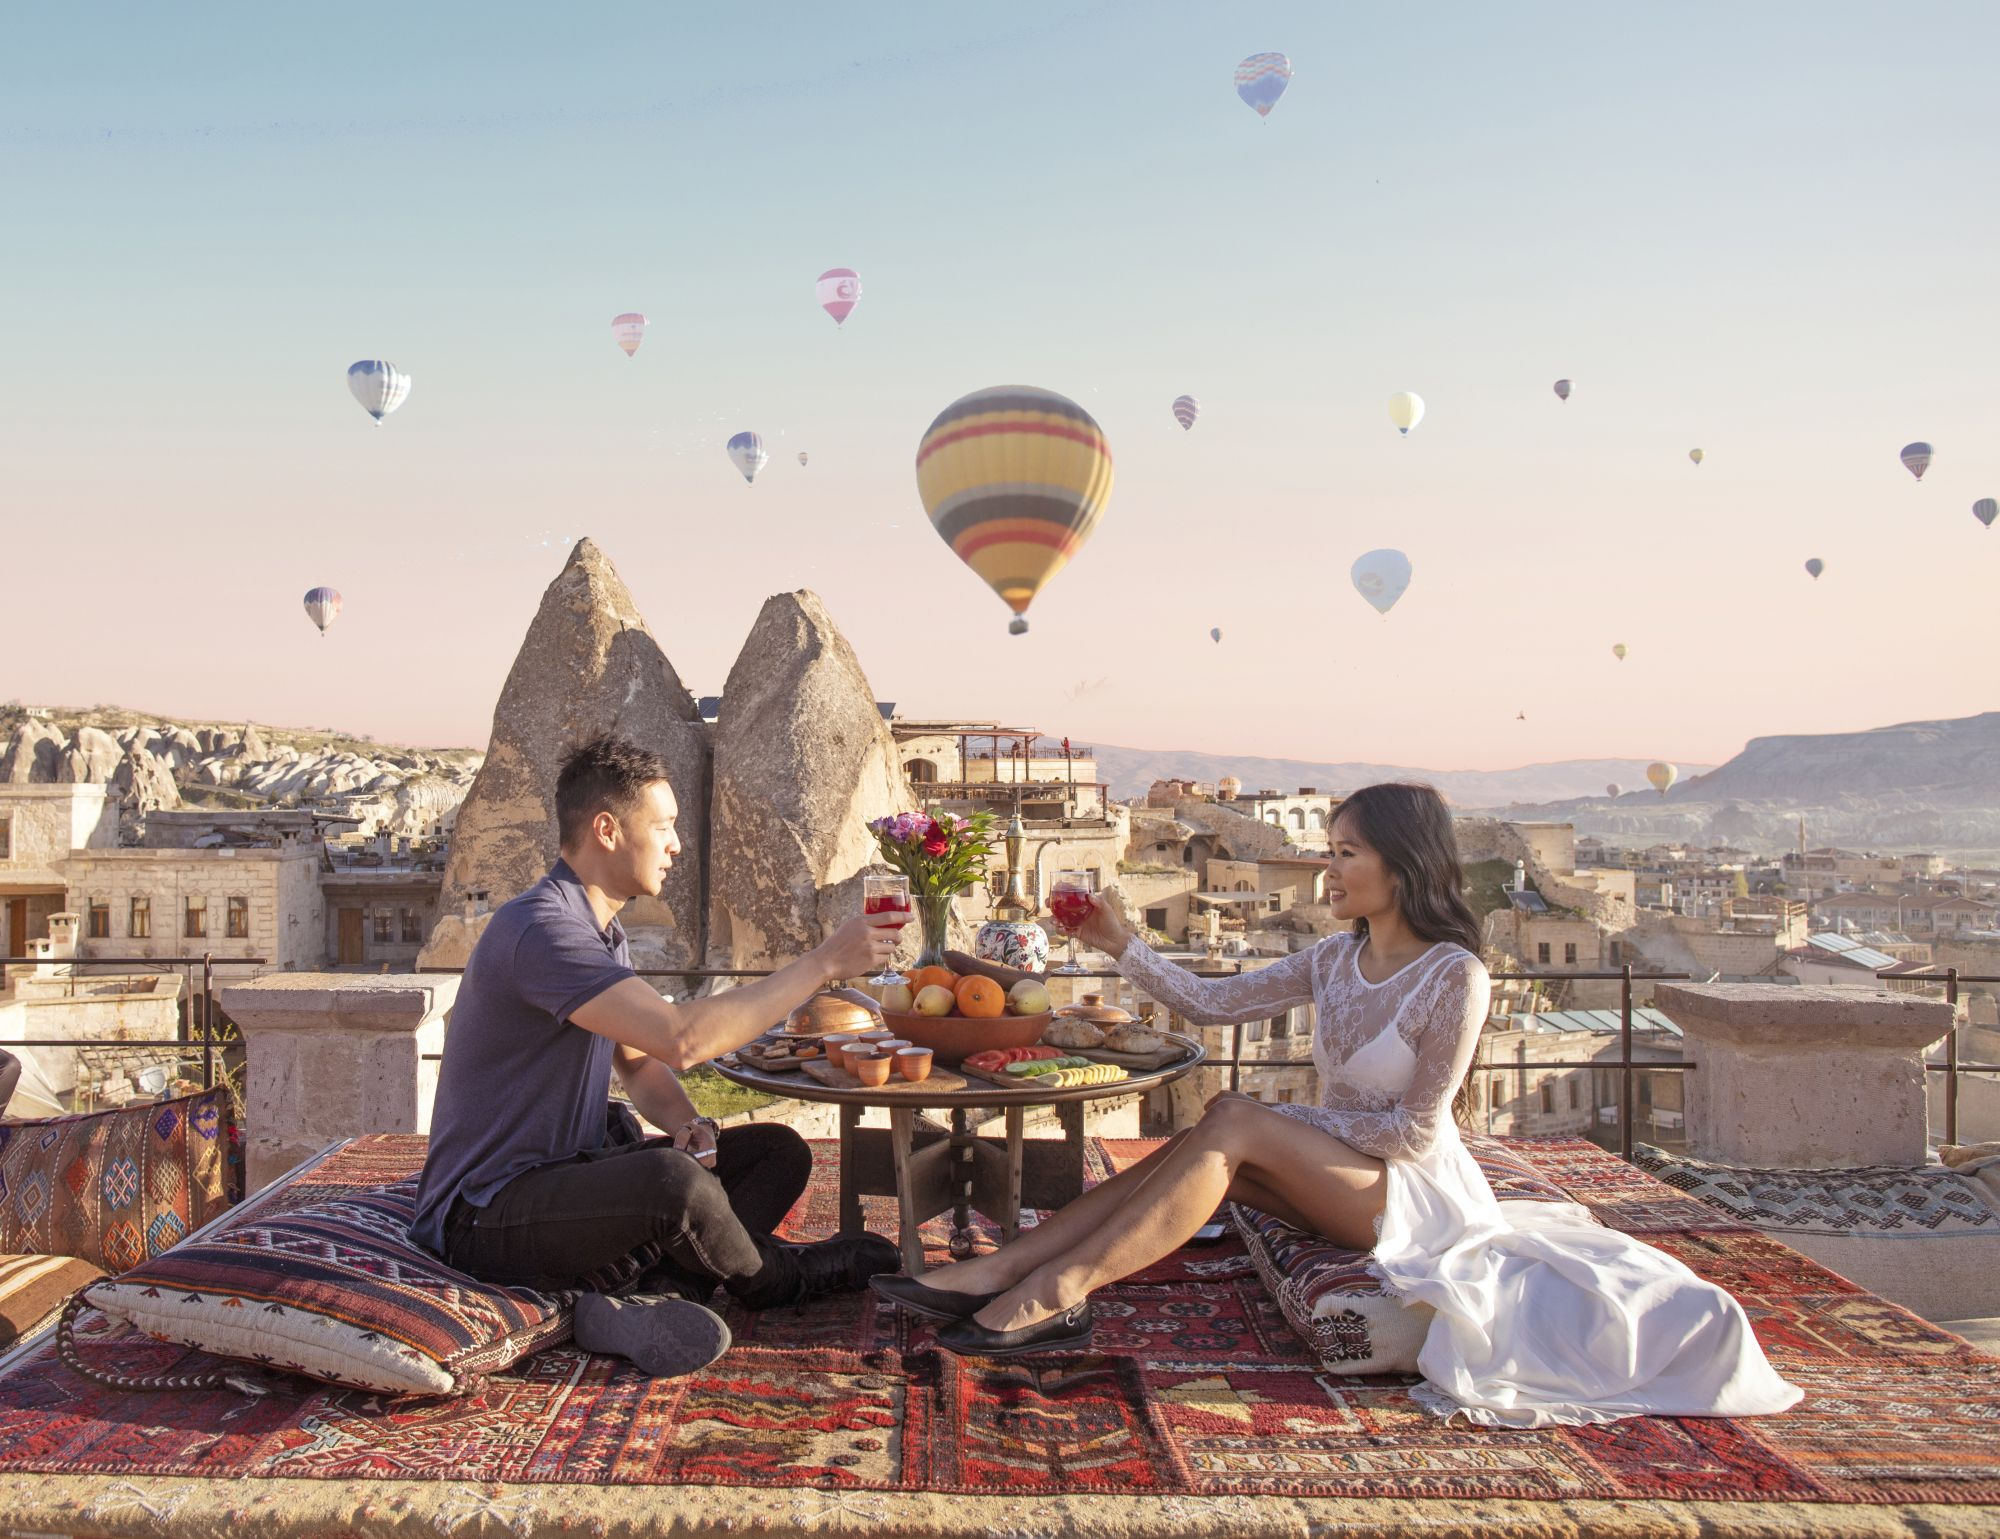 Turkey, Cappadocia (10 mustdo things!) Where to Fly